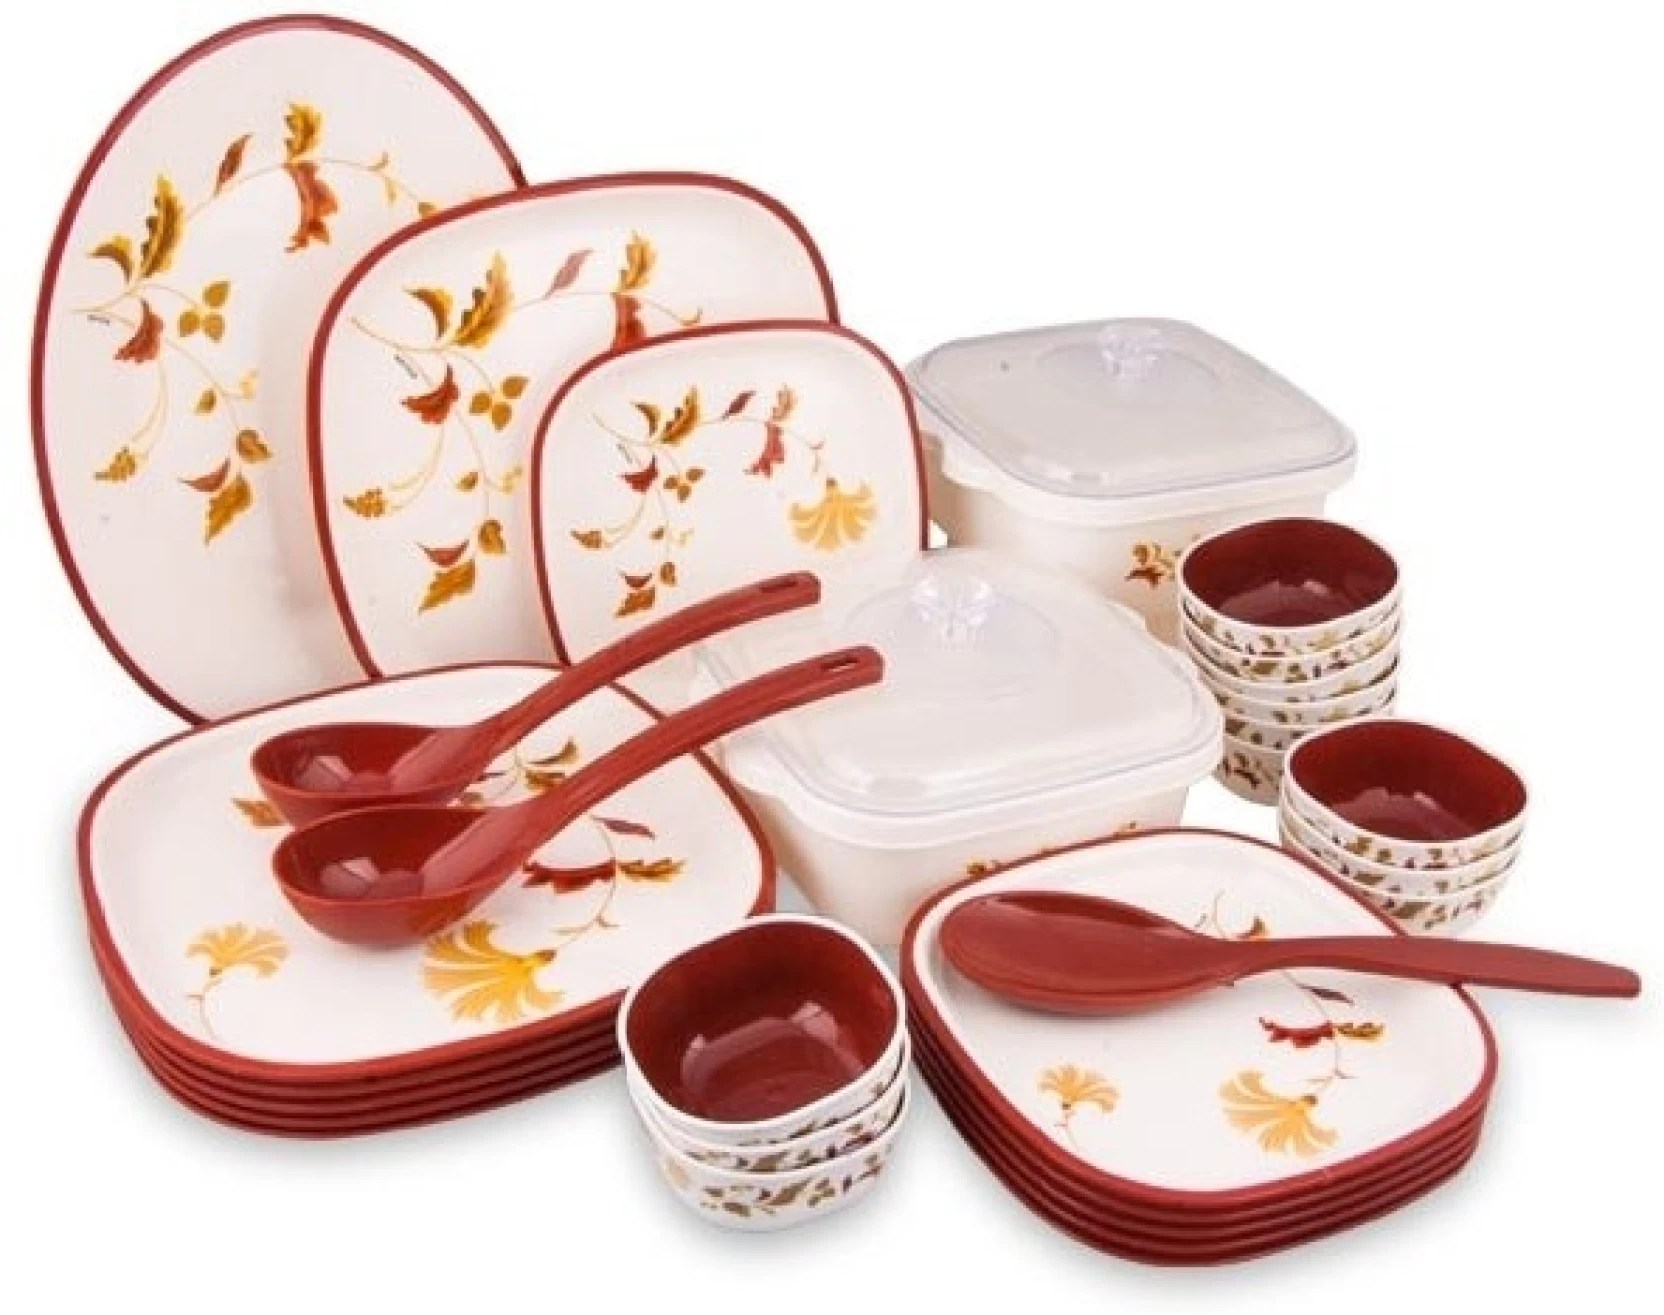 Dinner Set Nayasa Square Rust Pack Of 32 Dinner Set Price In India